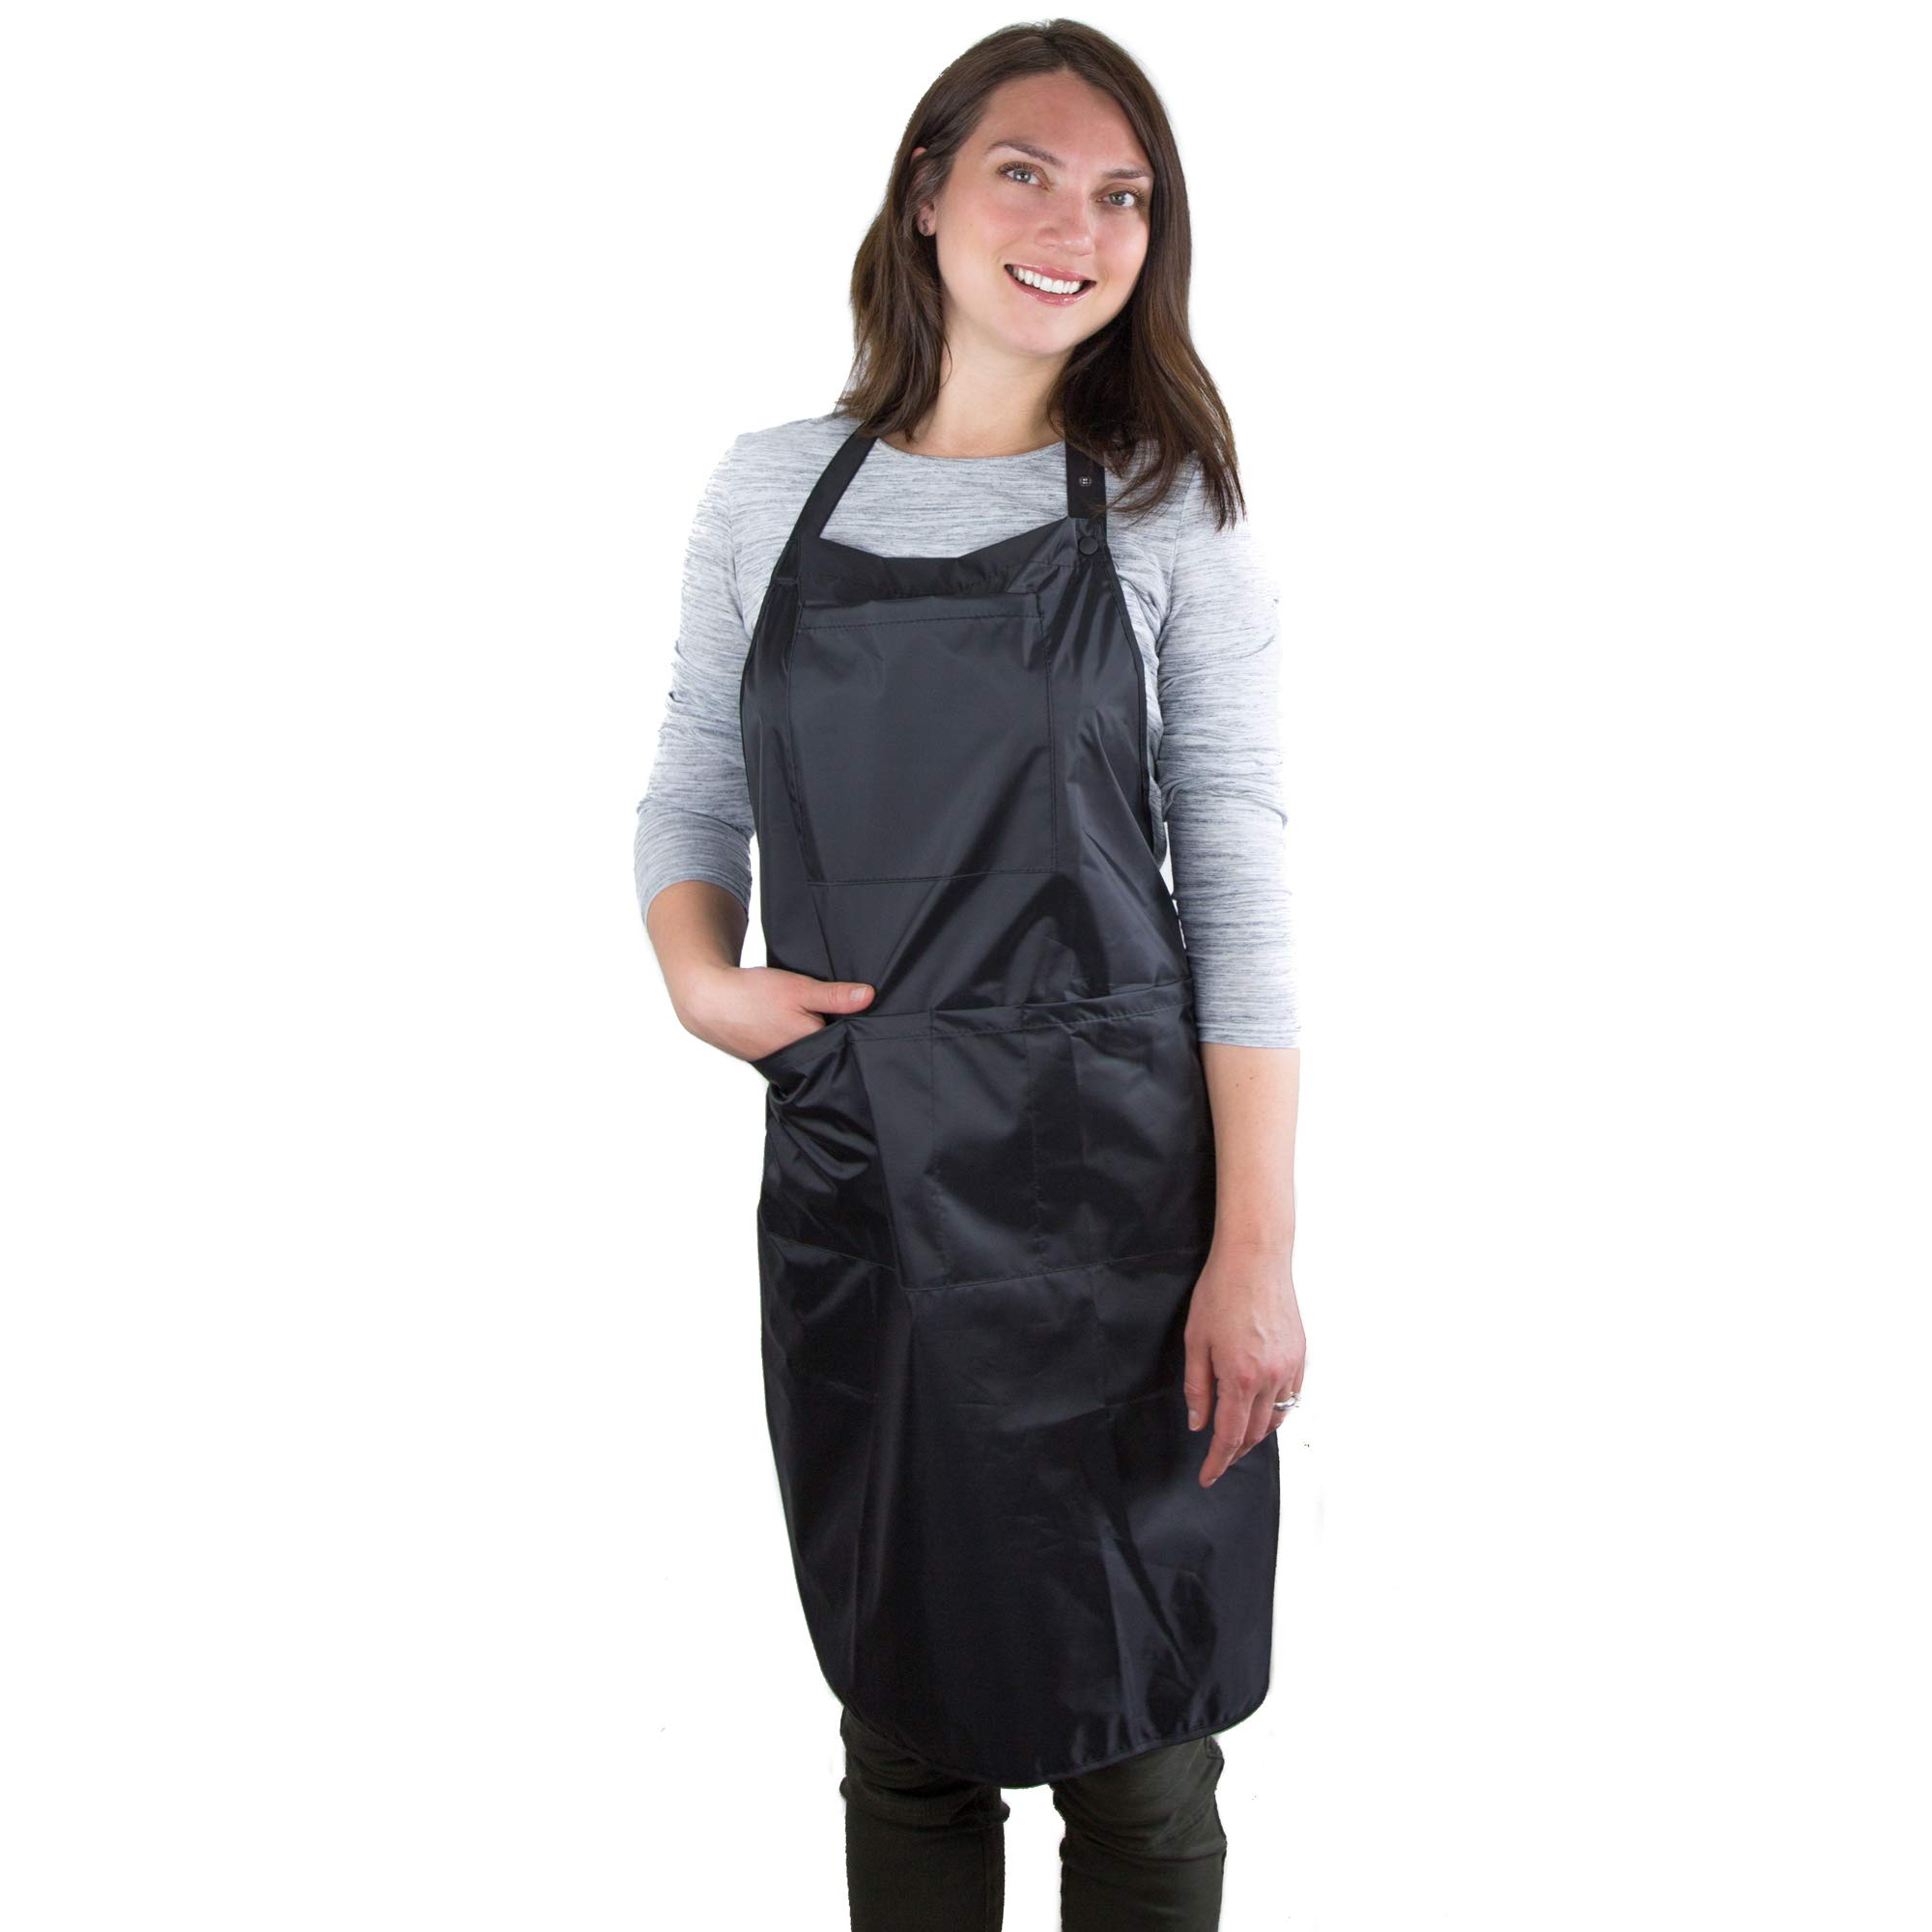 Hair Stylist Apron - Waterproof Apron - Protective PVC Coating - Cosmetology Supplies - Nail Tech Apron - Cosmetologist Apron - Dog Grooming Apron by Salon Supply Co